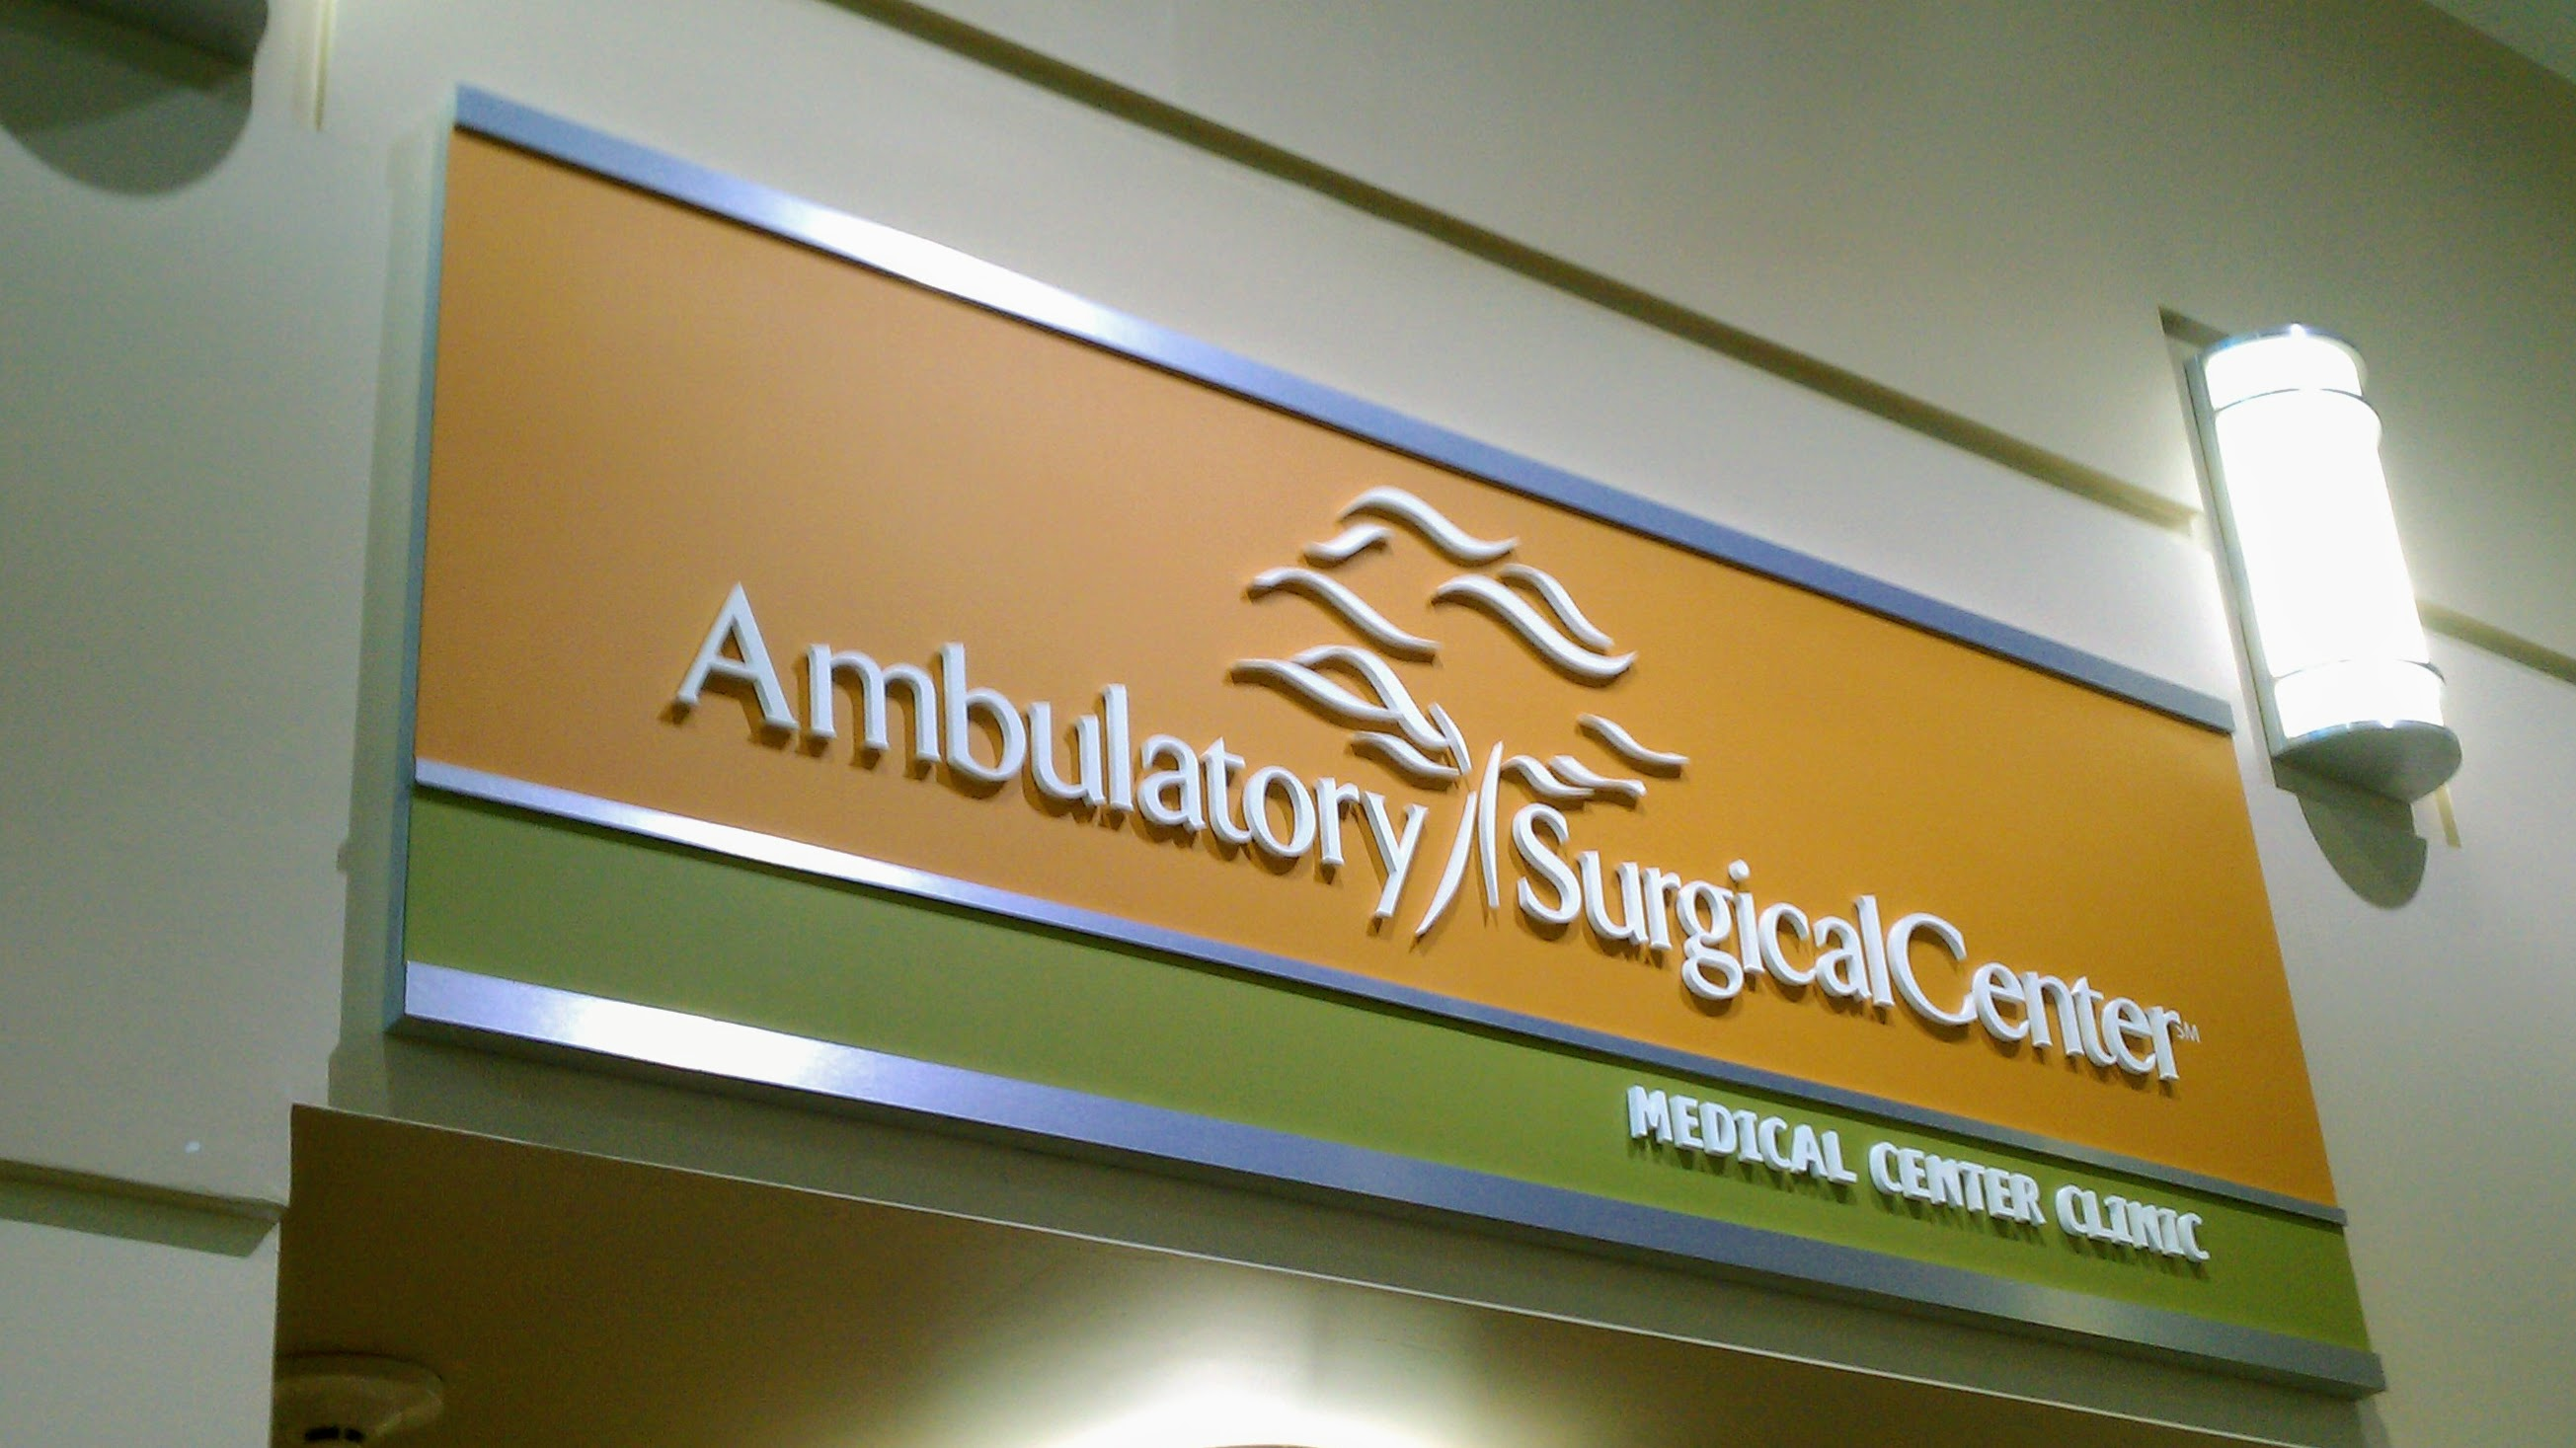 Interior Dimensional Medical Center Sign